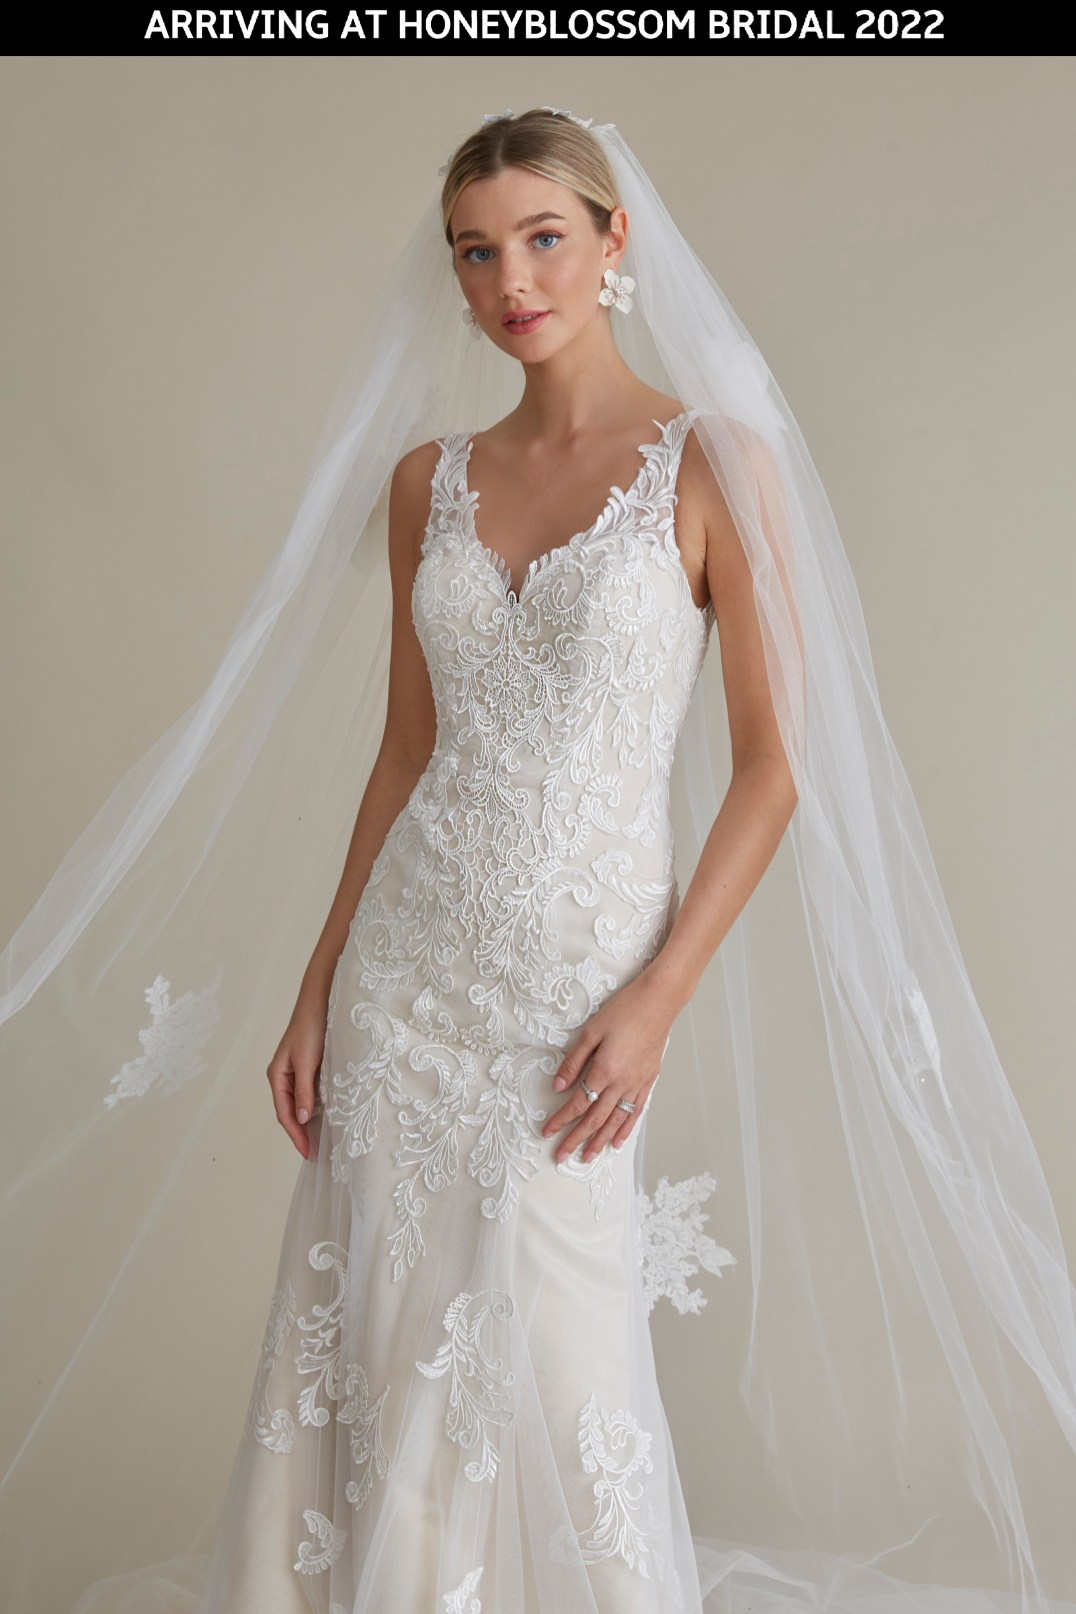 MiaMia Anya wedding gown arriving soon to Honeyblossom Bridal